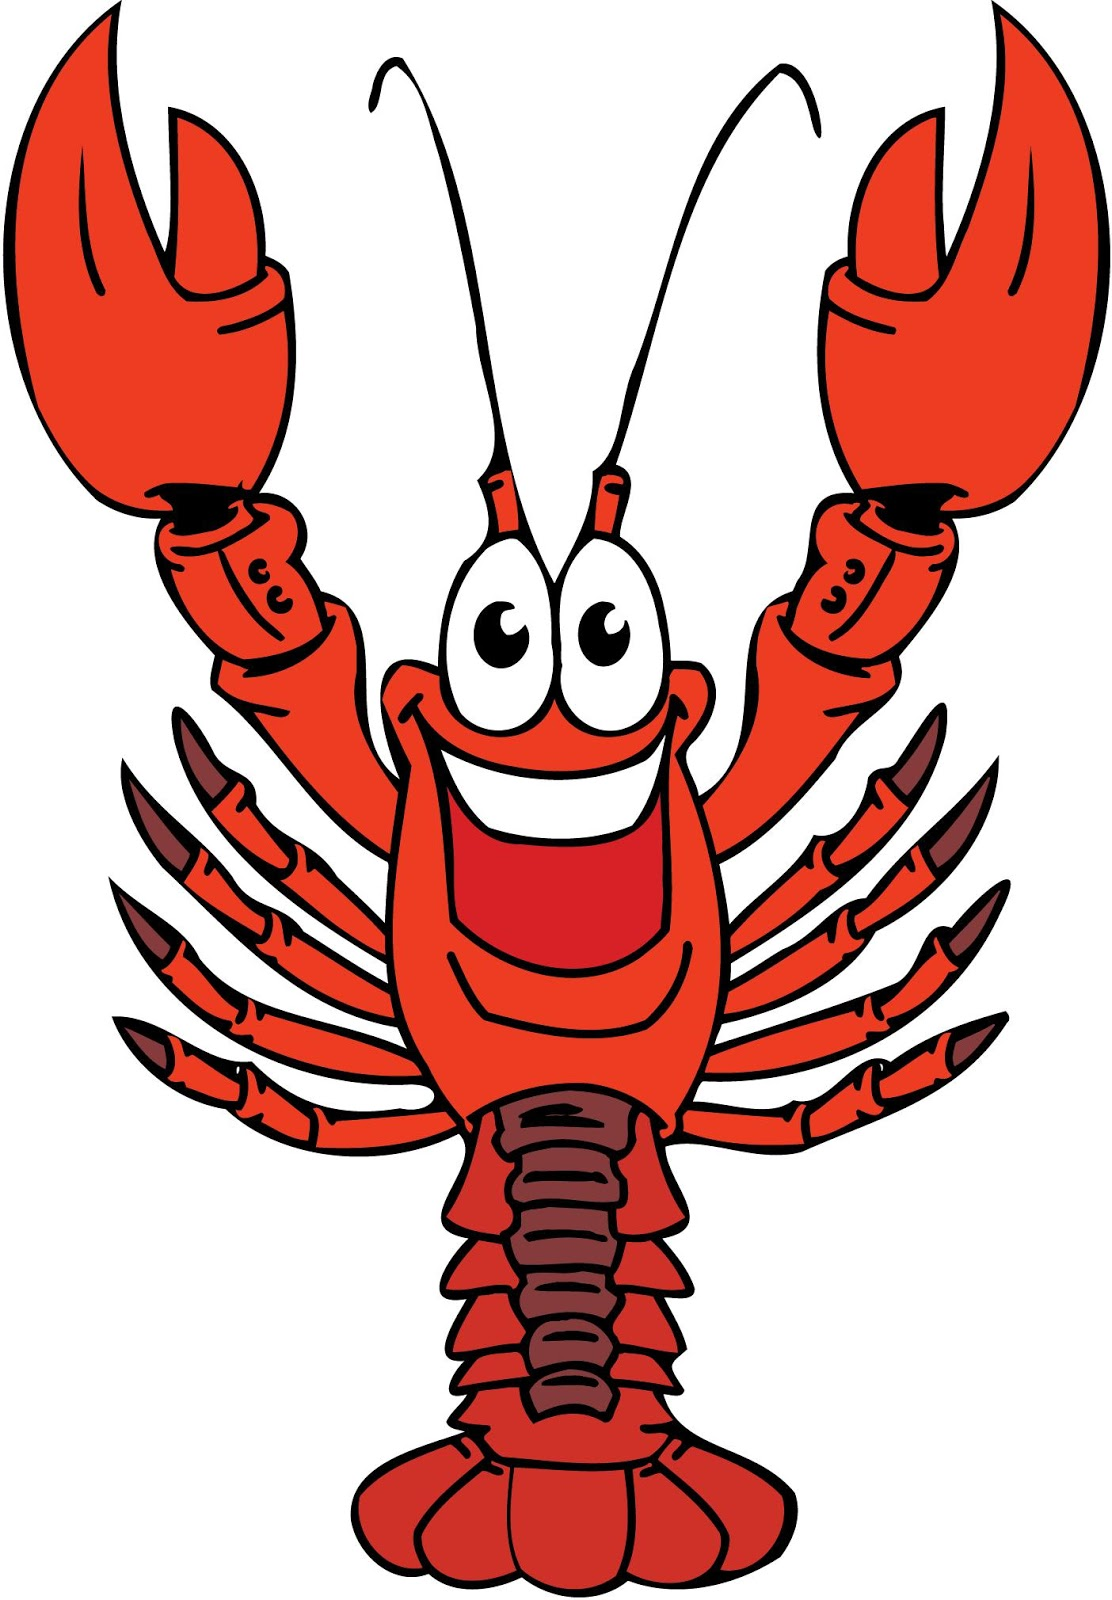 banner library stock Free cliparts download clip. Crawfish clipart.